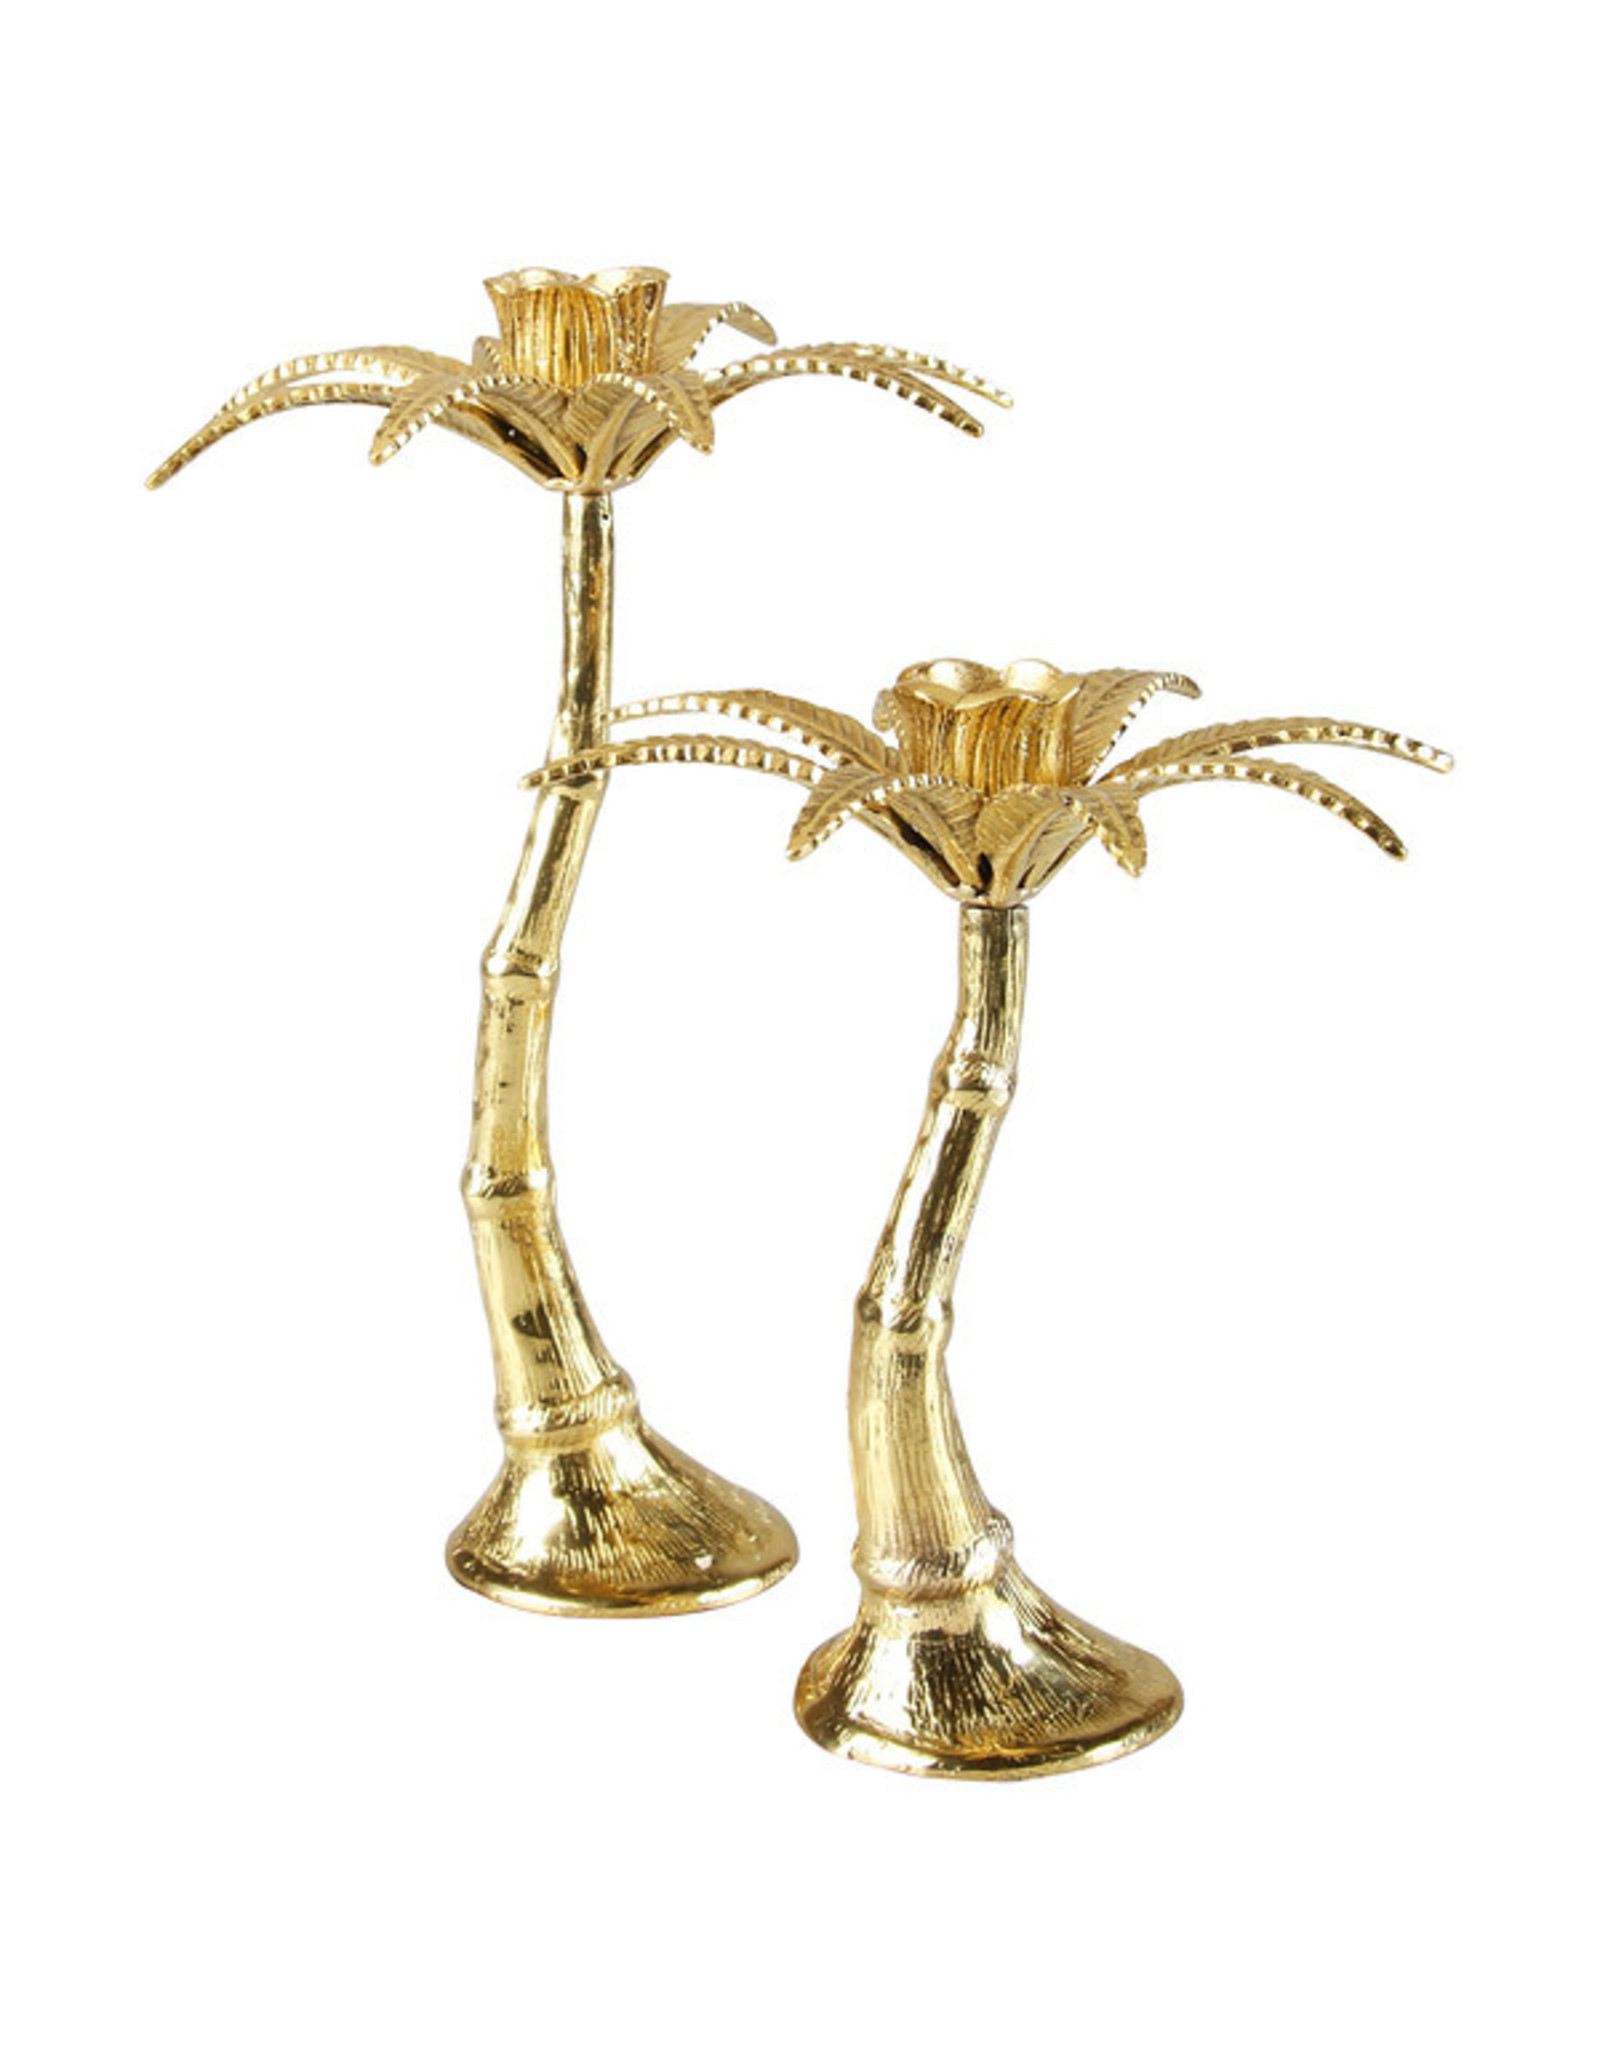 &Klevering Palm tree candle holder brass large